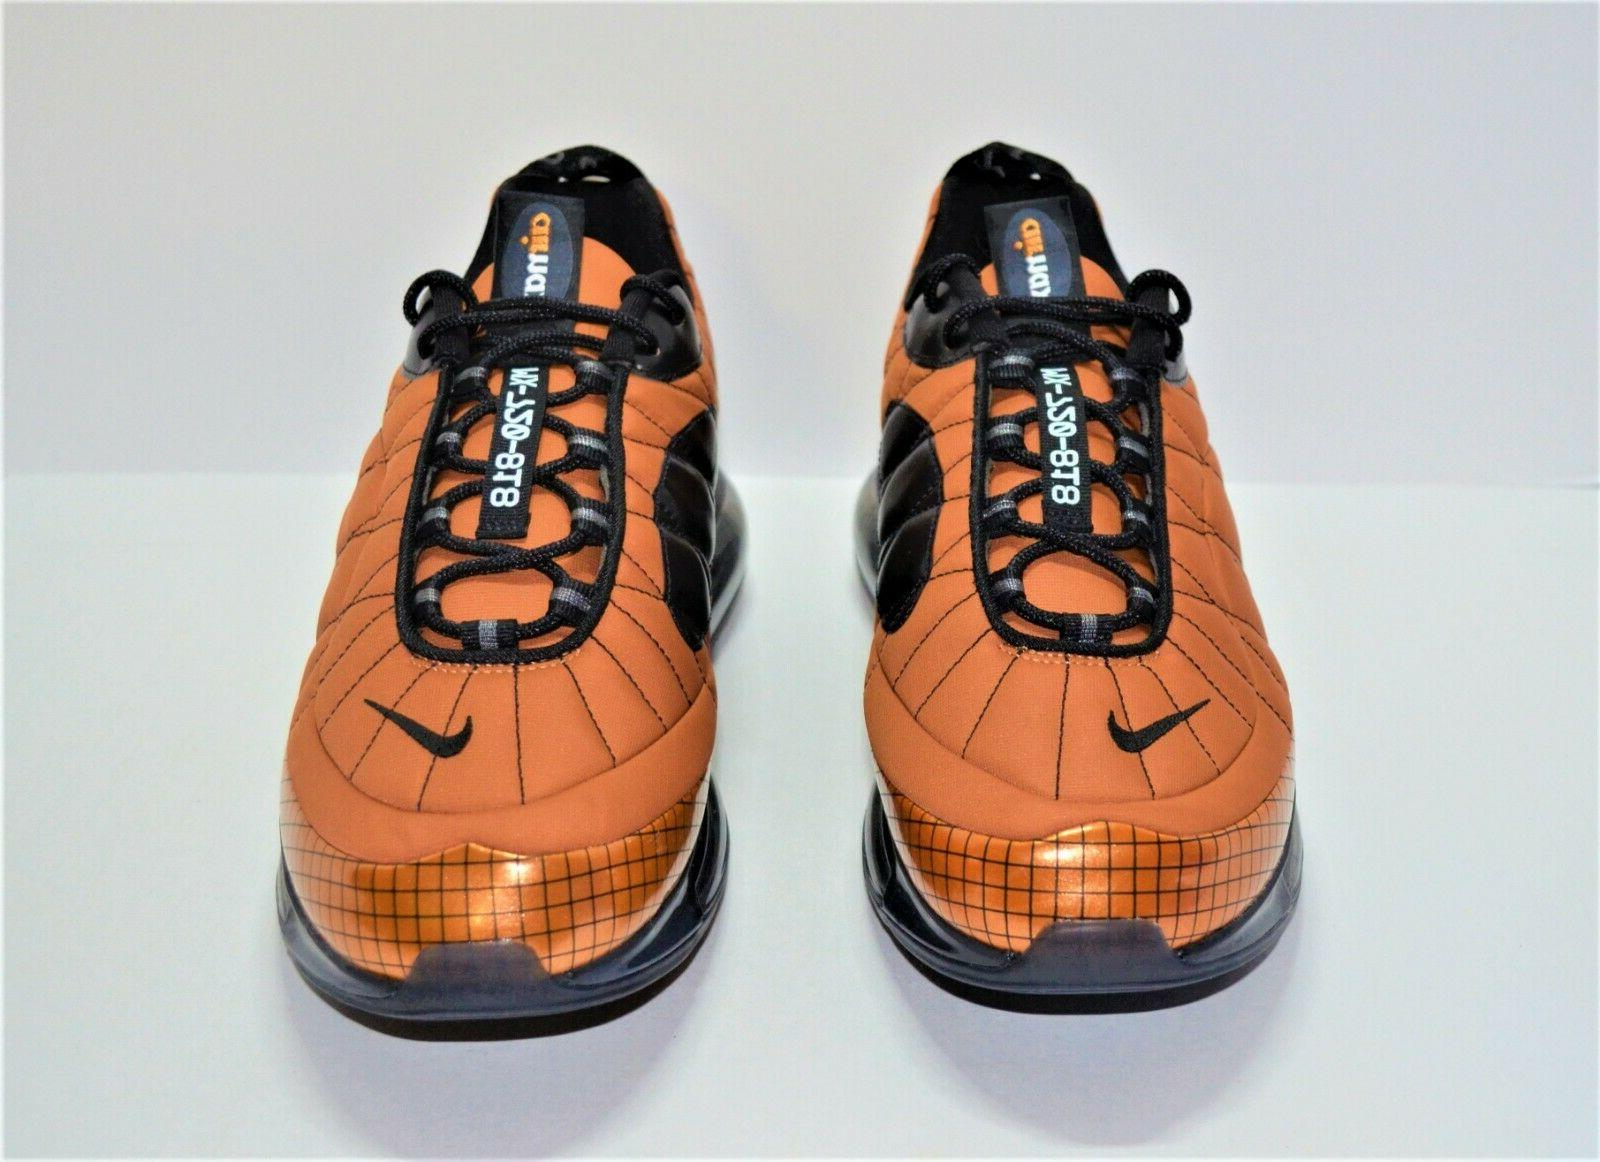 NEW NIKE AIR MX-720-818 SIZE